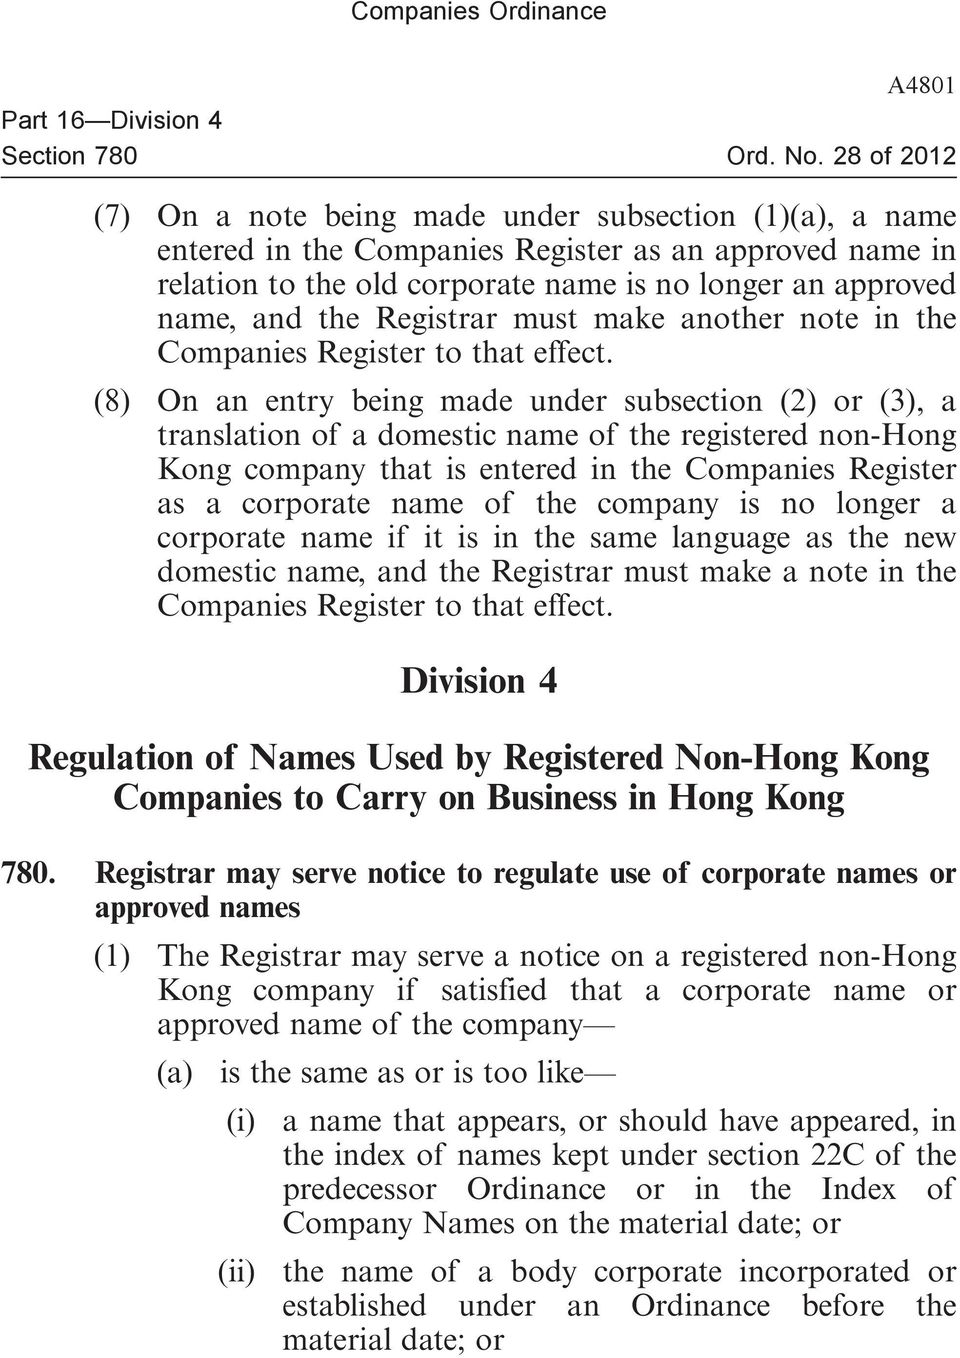 (8) On an entry being made under subsection (2) or (3), a translation of a domestic name of the registered non-hong Kong company that is entered in the Companies Register as a corporate name of the